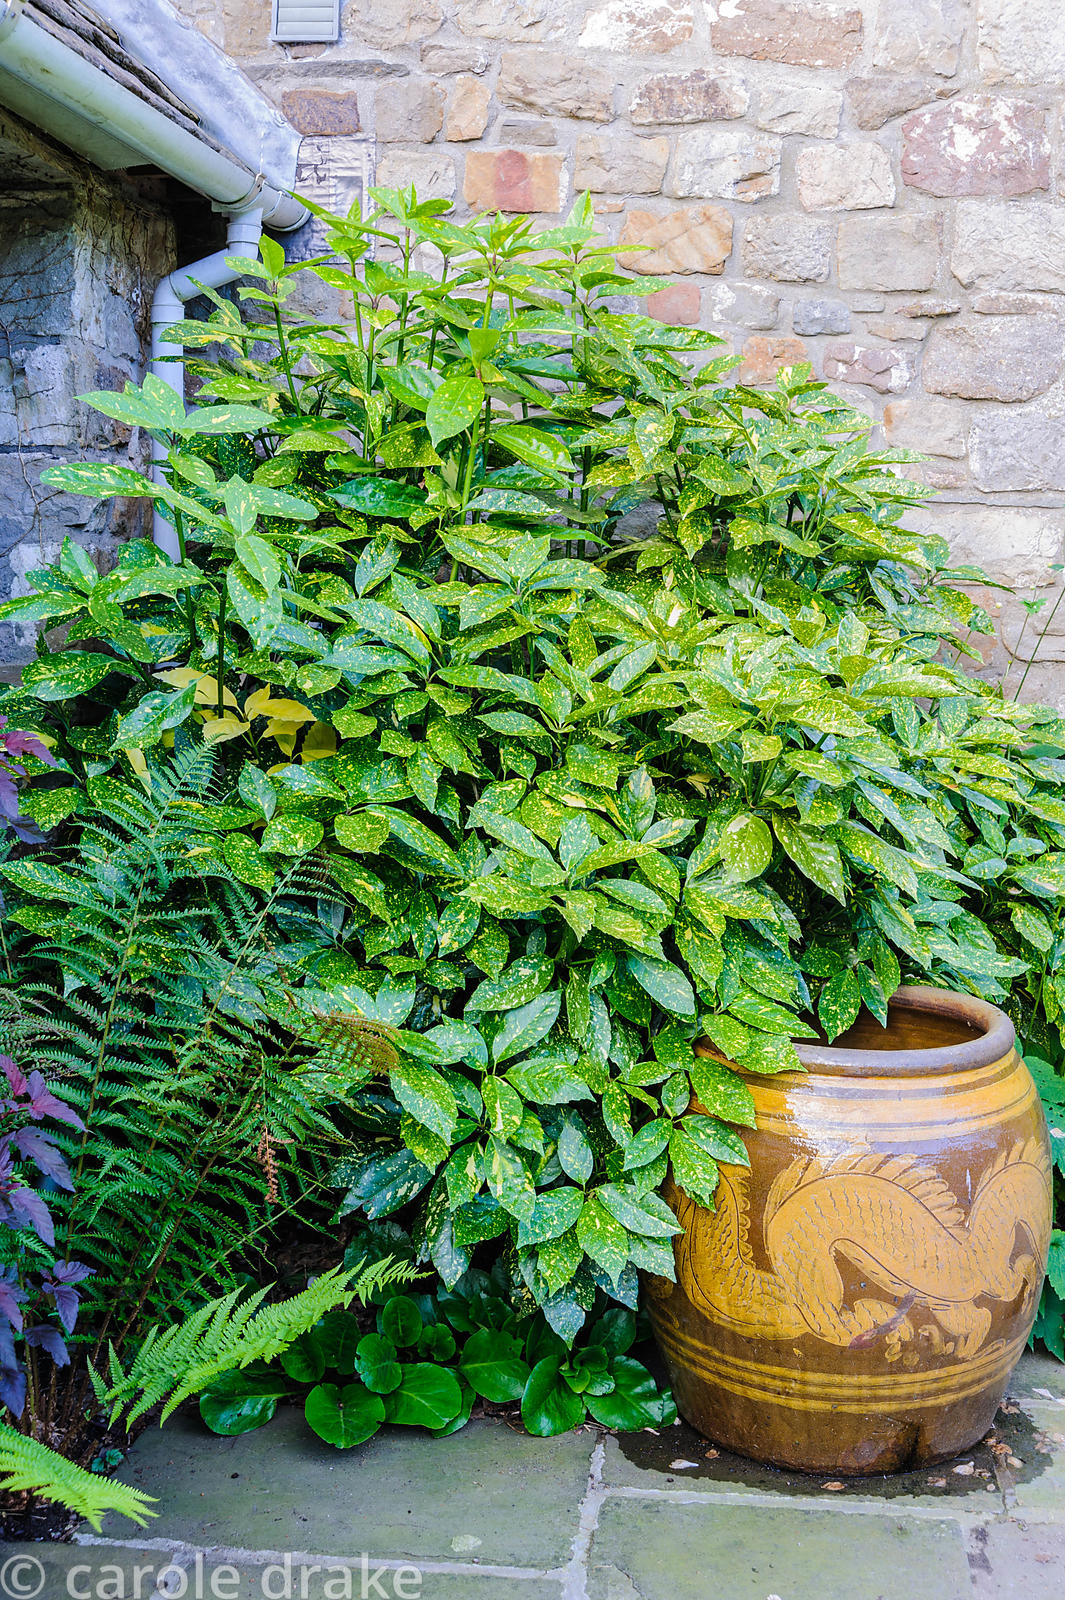 Aucuba japonica 'Crotonifolia', spotted laurel, lights up a shady corner beside a Chinese jar.